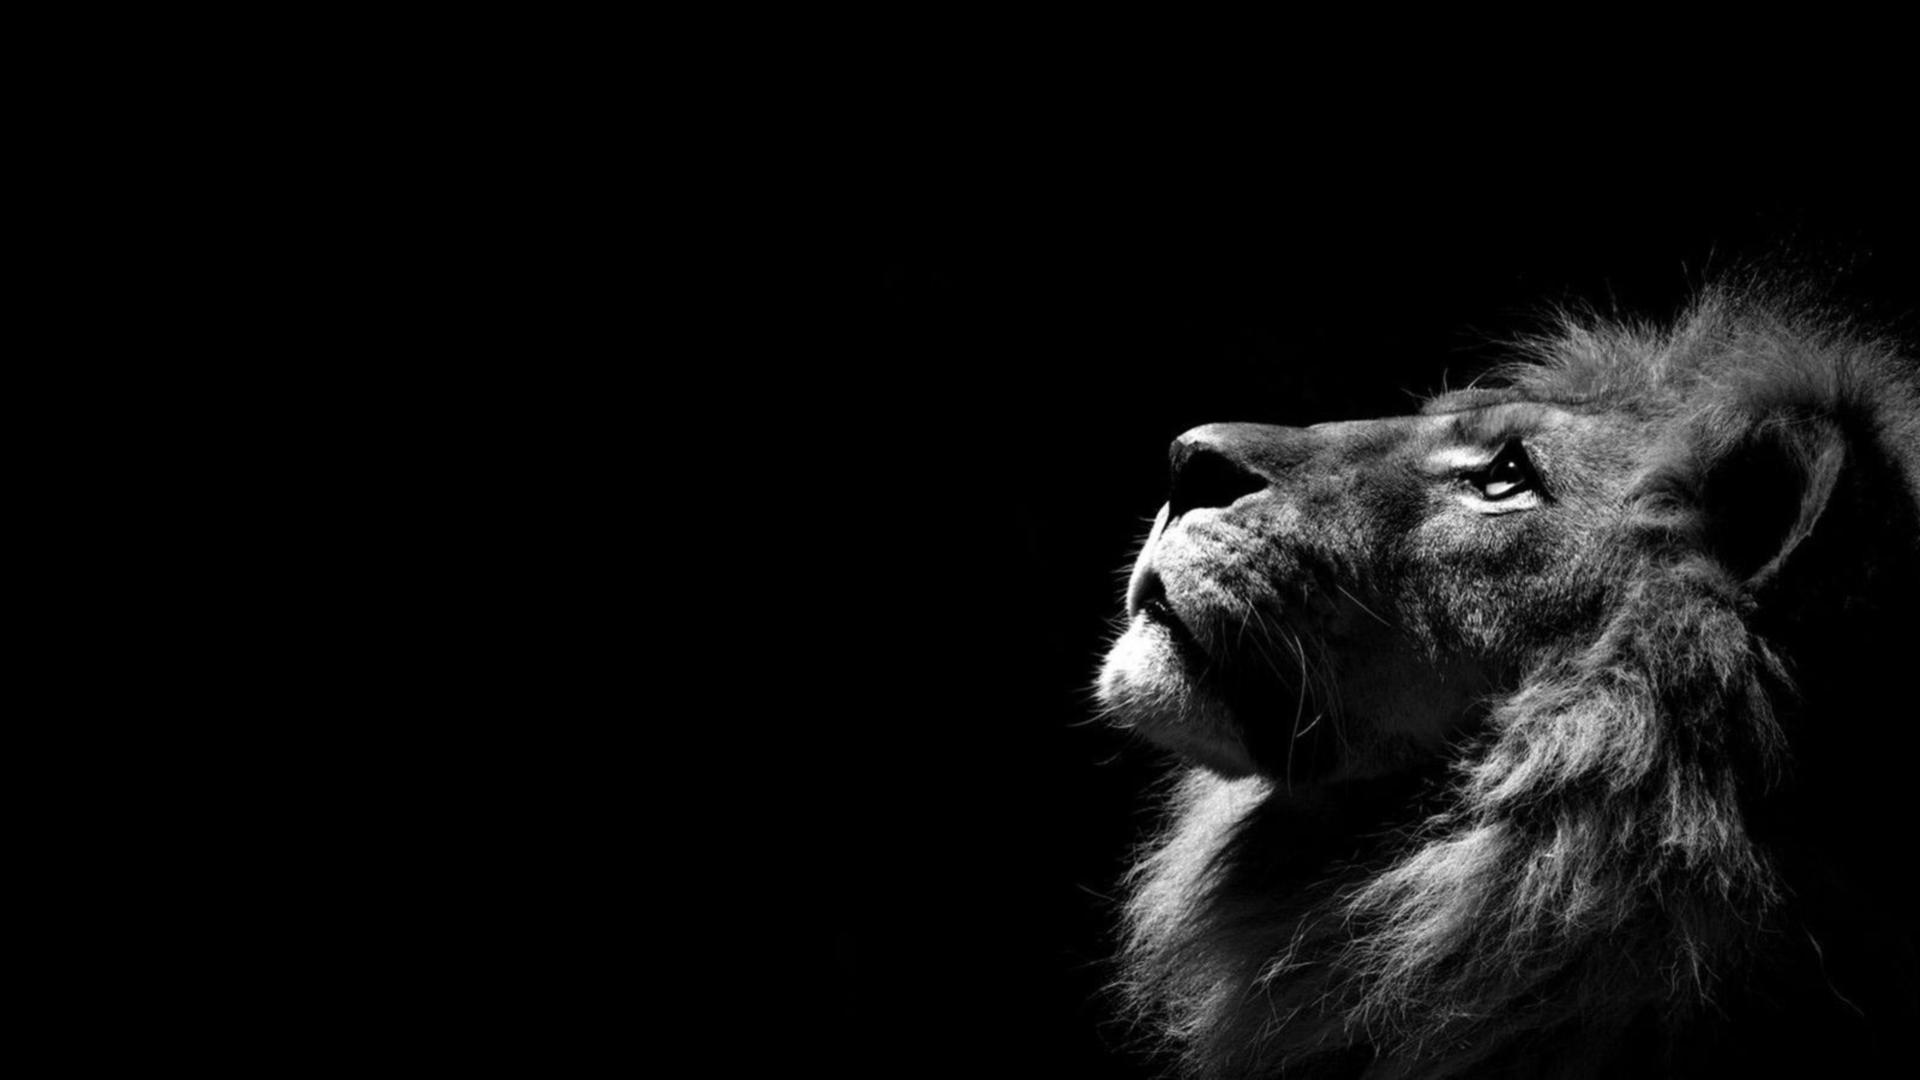 Lion Hd Wallpaper - Pc Wallpaper Lion , HD Wallpaper & Backgrounds